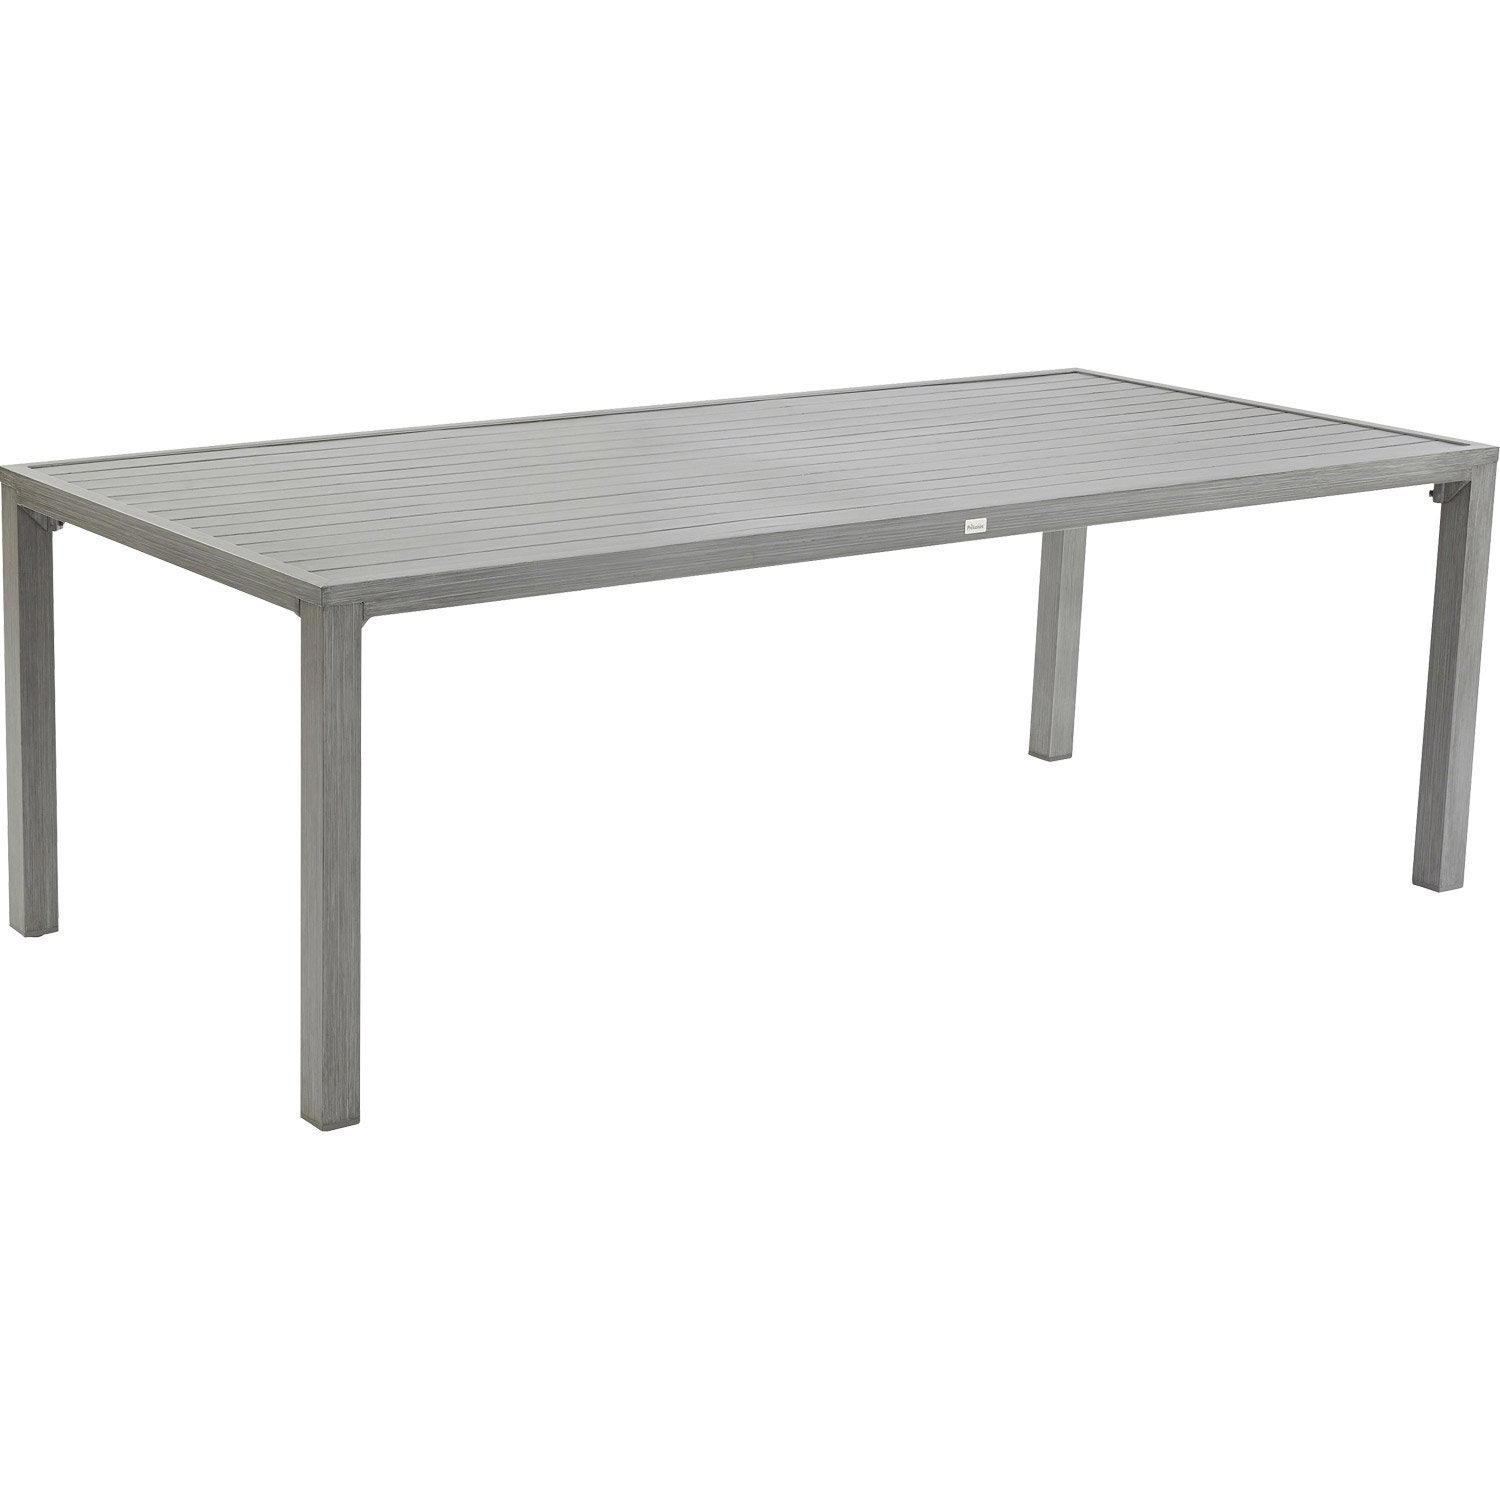 Design Table Jardin Grosfillex Auchan Saint Denis 1223 Table De Jardin Table Basse Maison